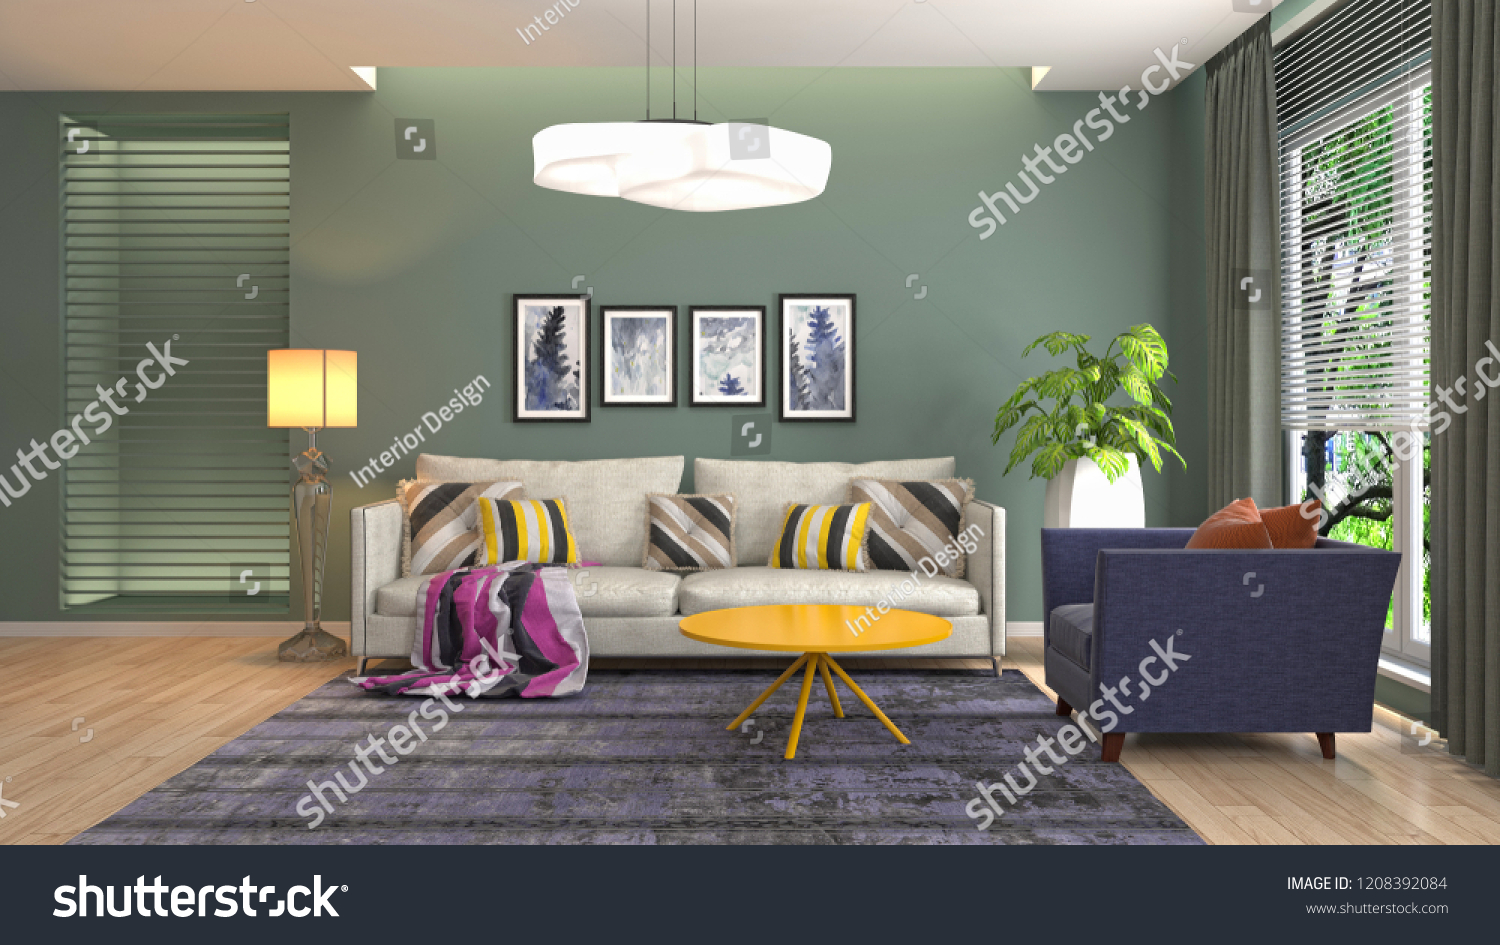 Bettsofa Interio Ch Interior Living Room 3 D Illustration Stock Illustration